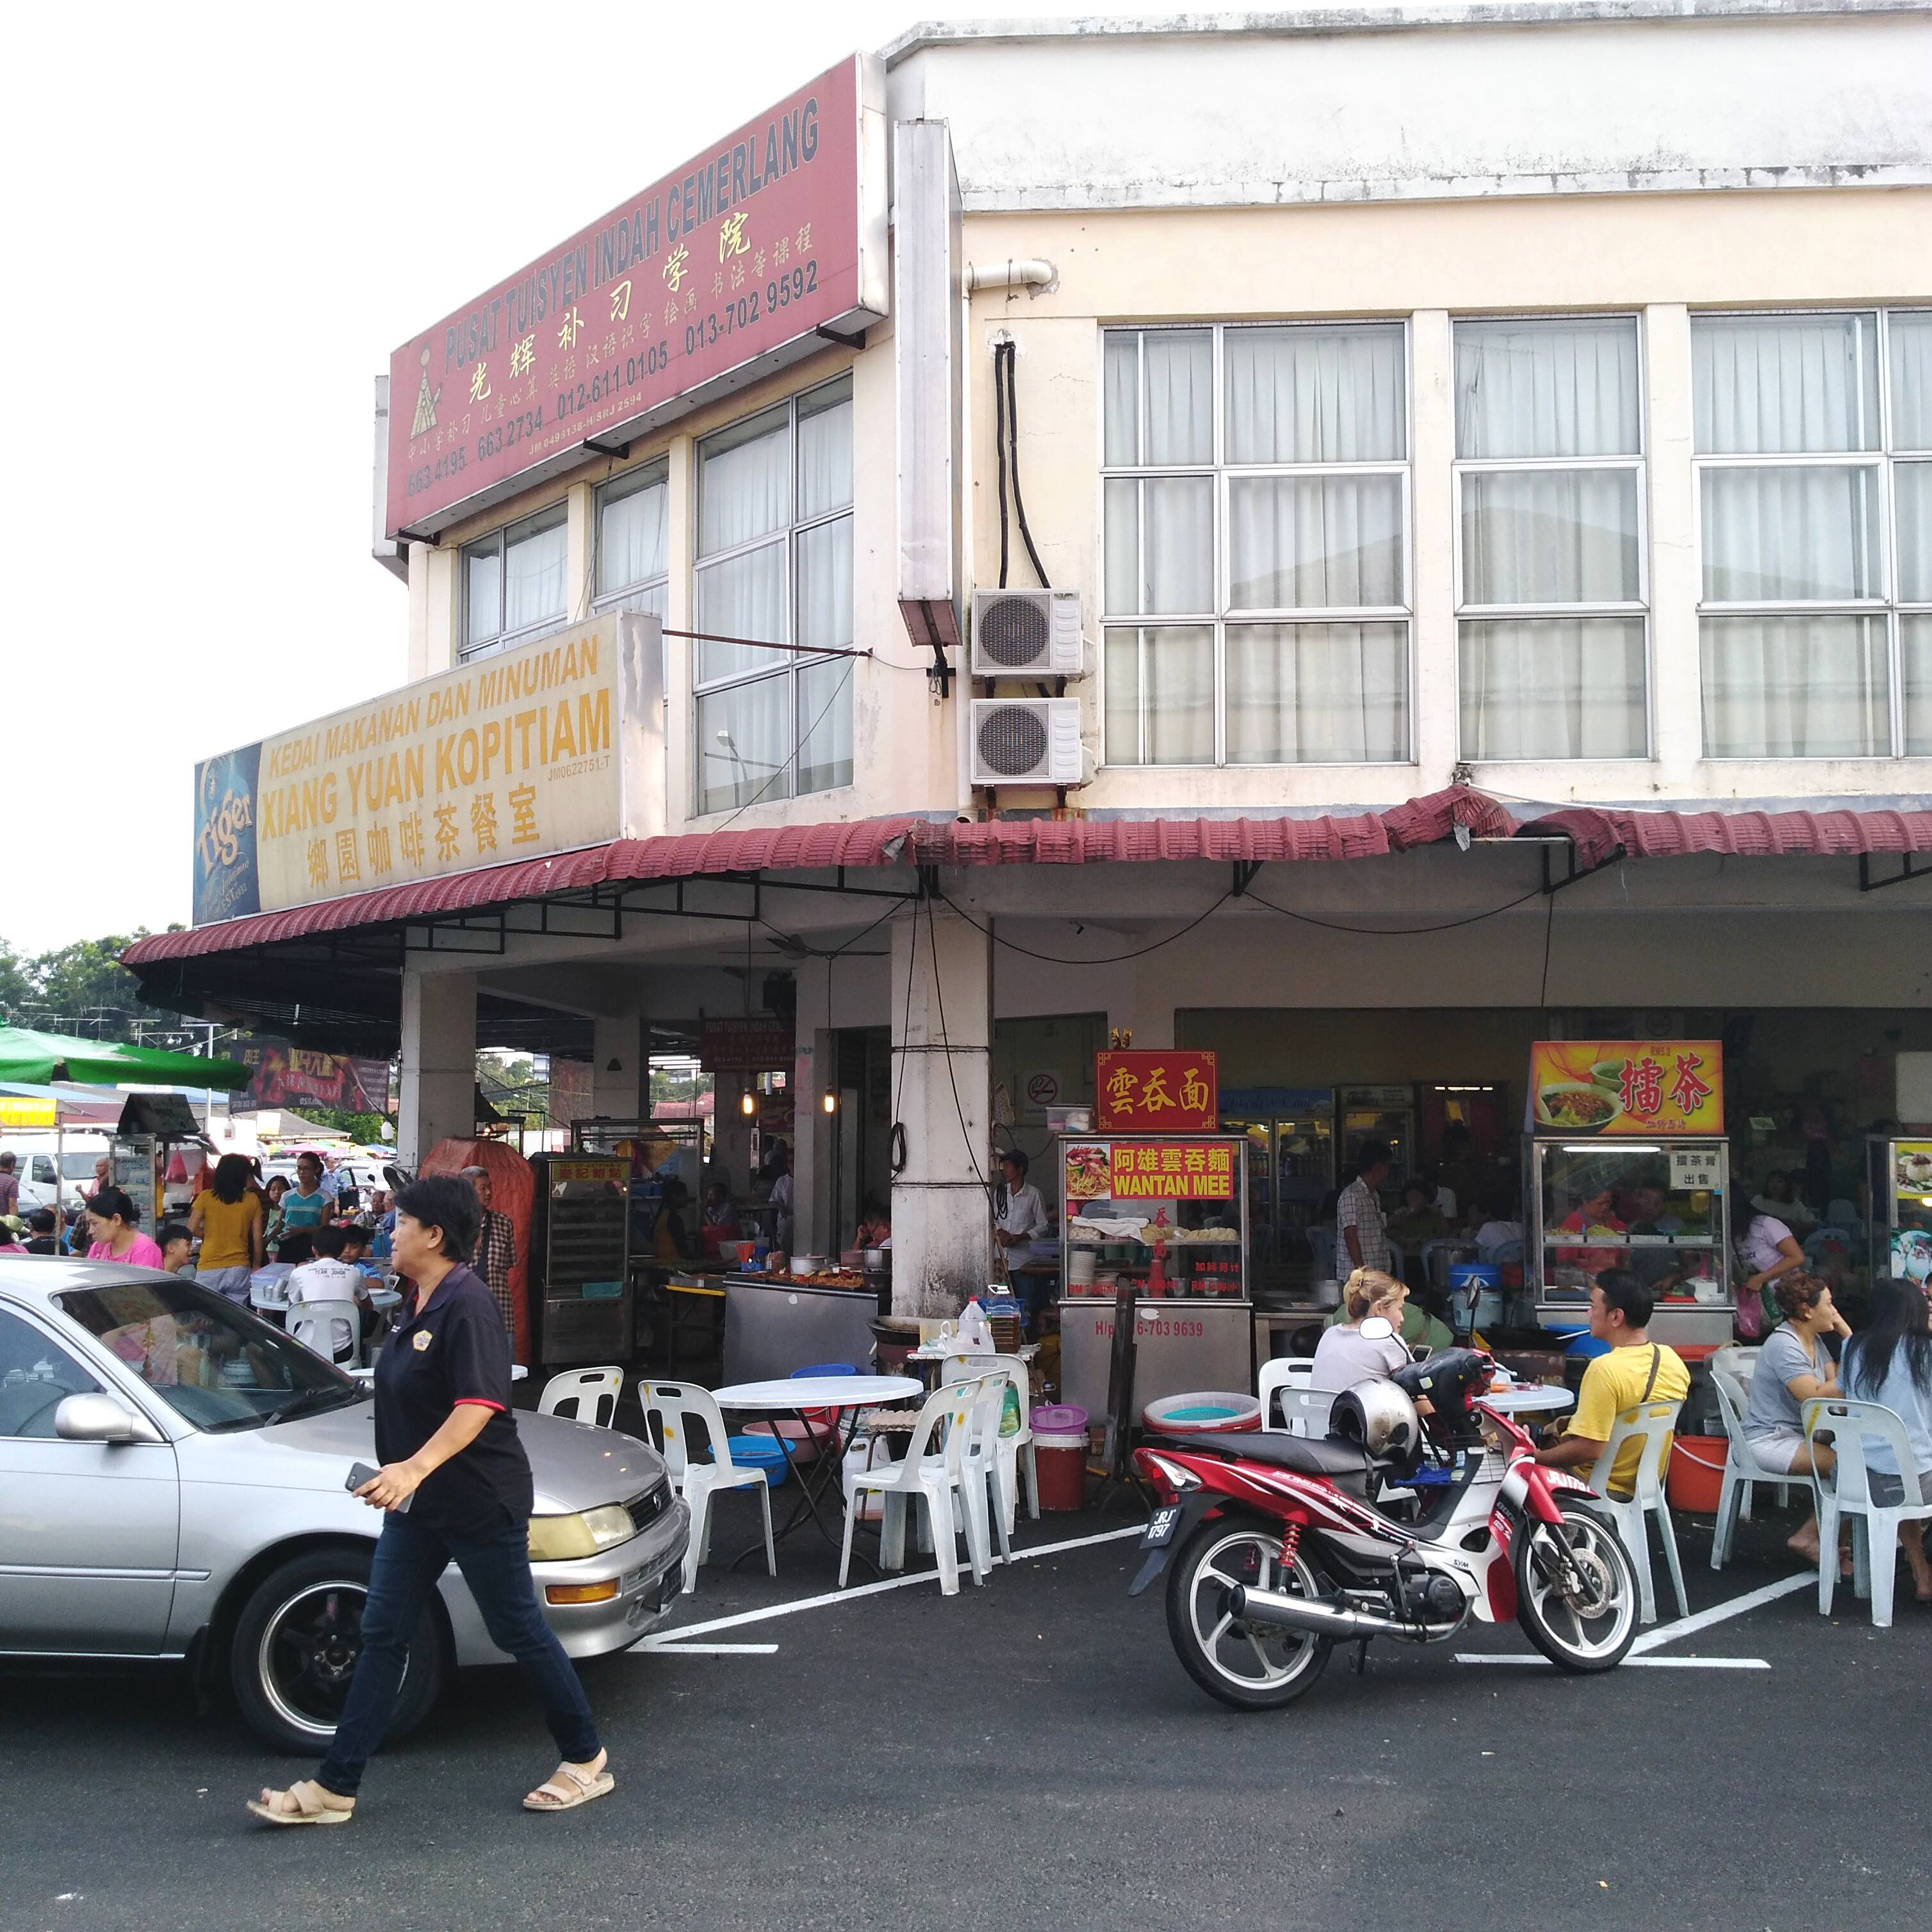 A busy kopitiam in the Chinese market, a short walk from my home.